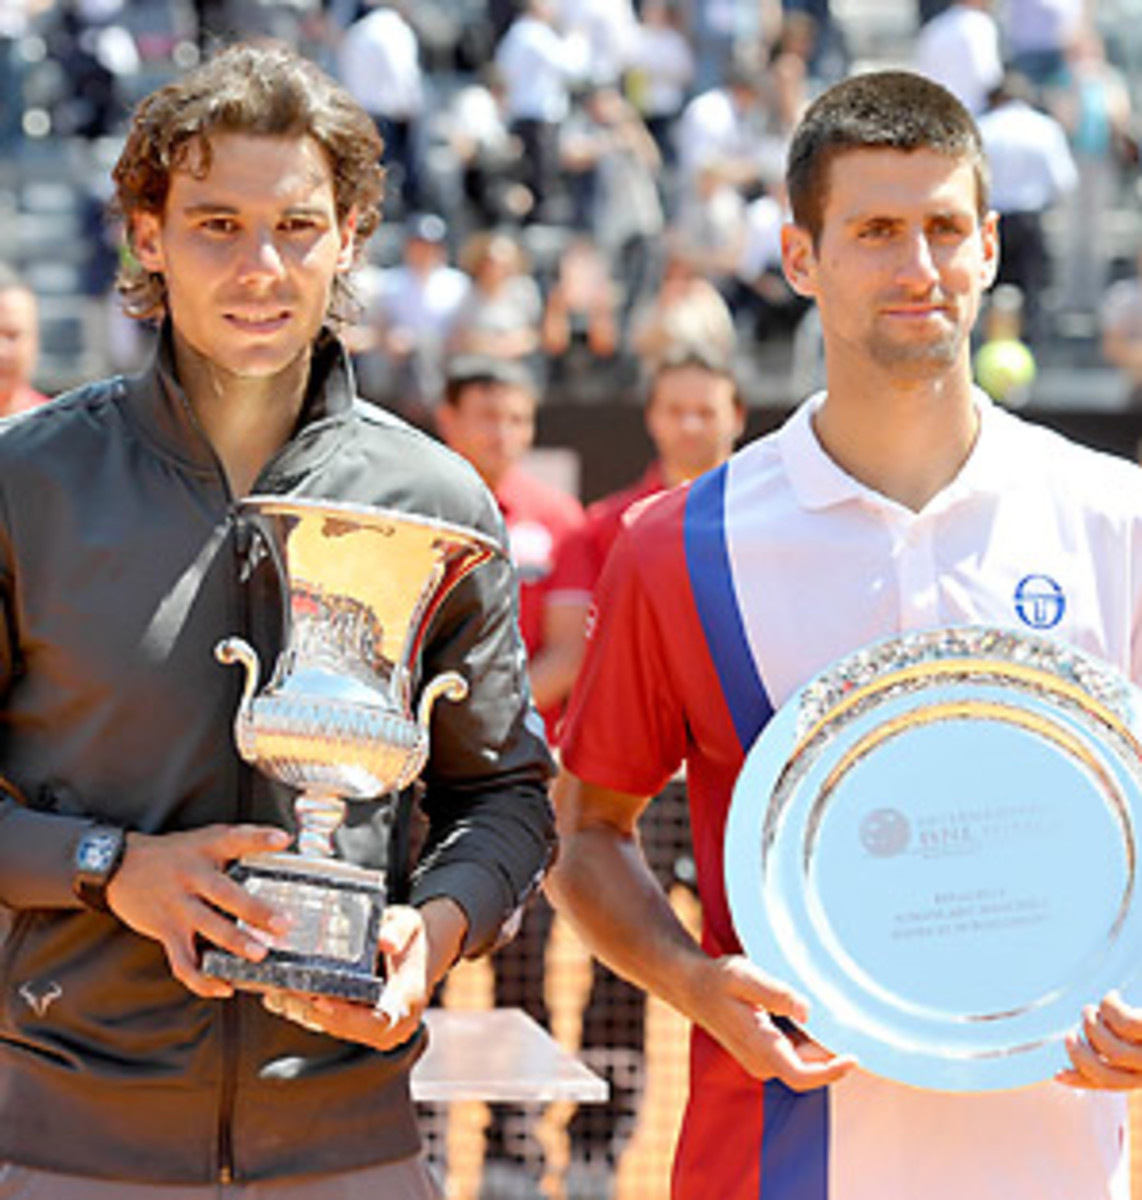 Rafael Nadal came out on top over Novak Djokovic in their last two meetings in Rome and Monte Carlo.